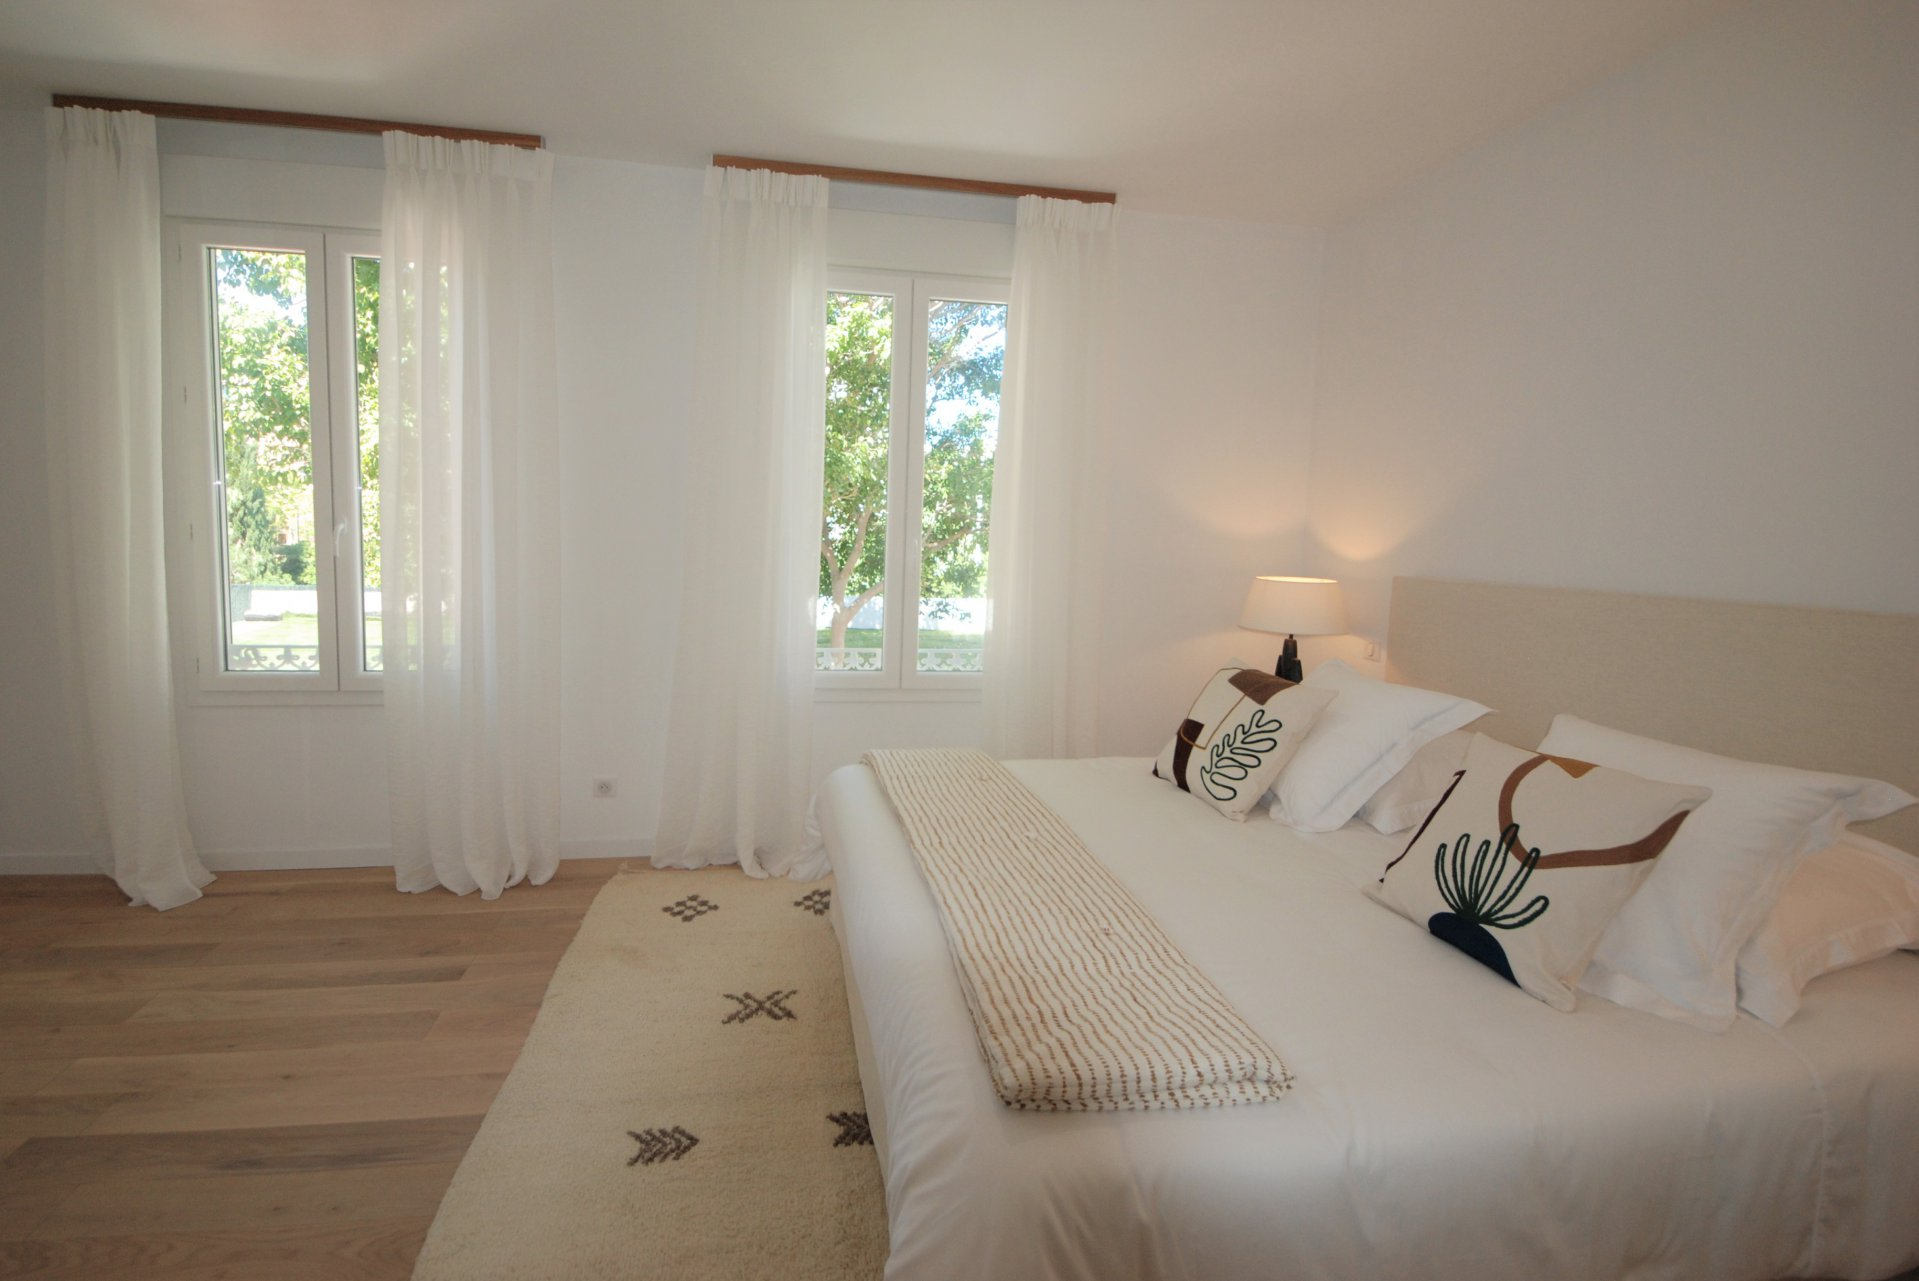 Exceptionnel / 3 bedroom House with terrace and garden / Cannes Palm Beach